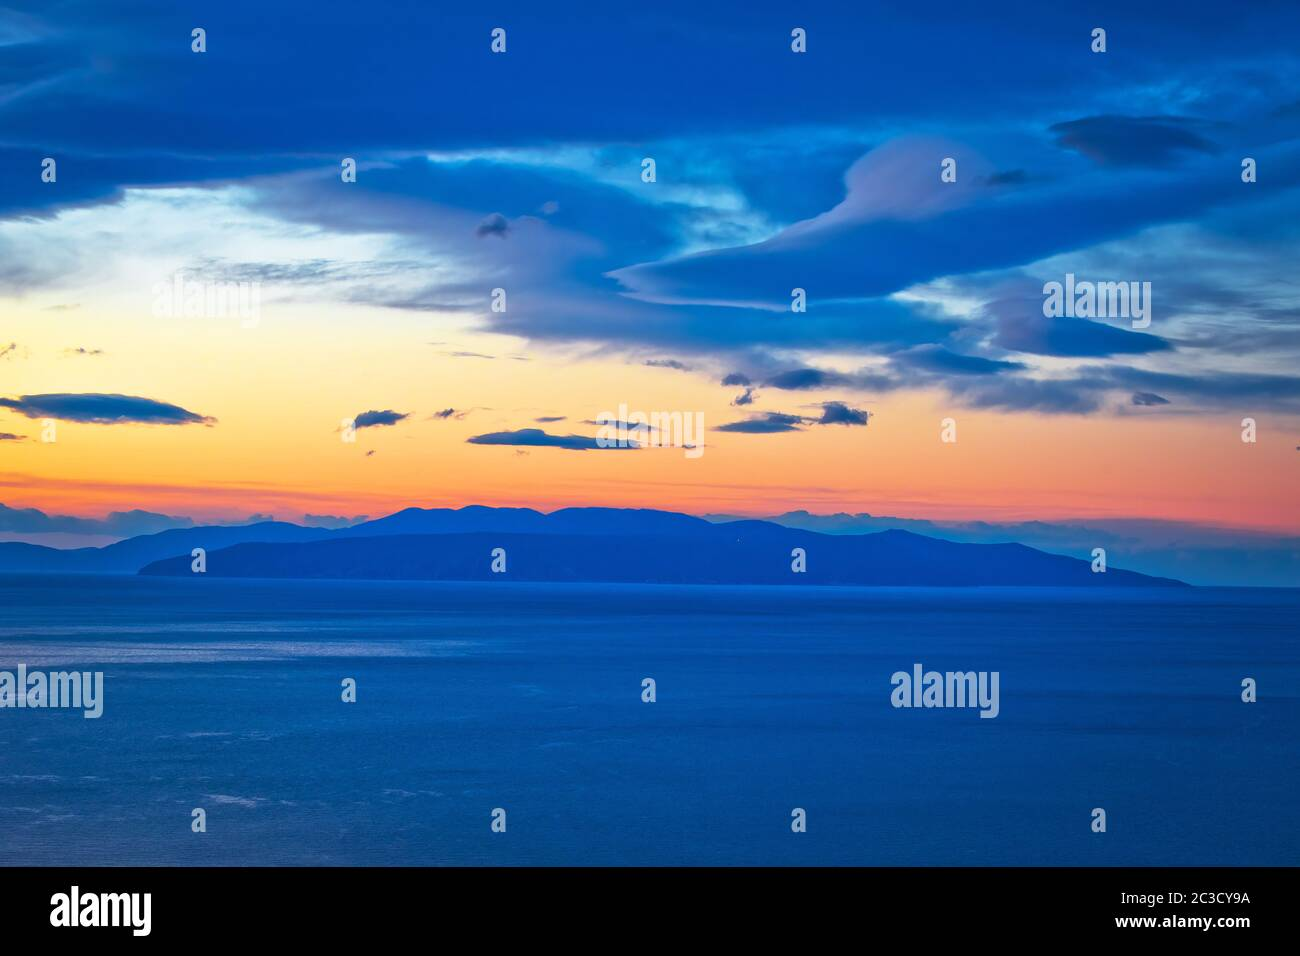 Kvarner bay and island of Krk on open sea at golden dawn view Stock Photo